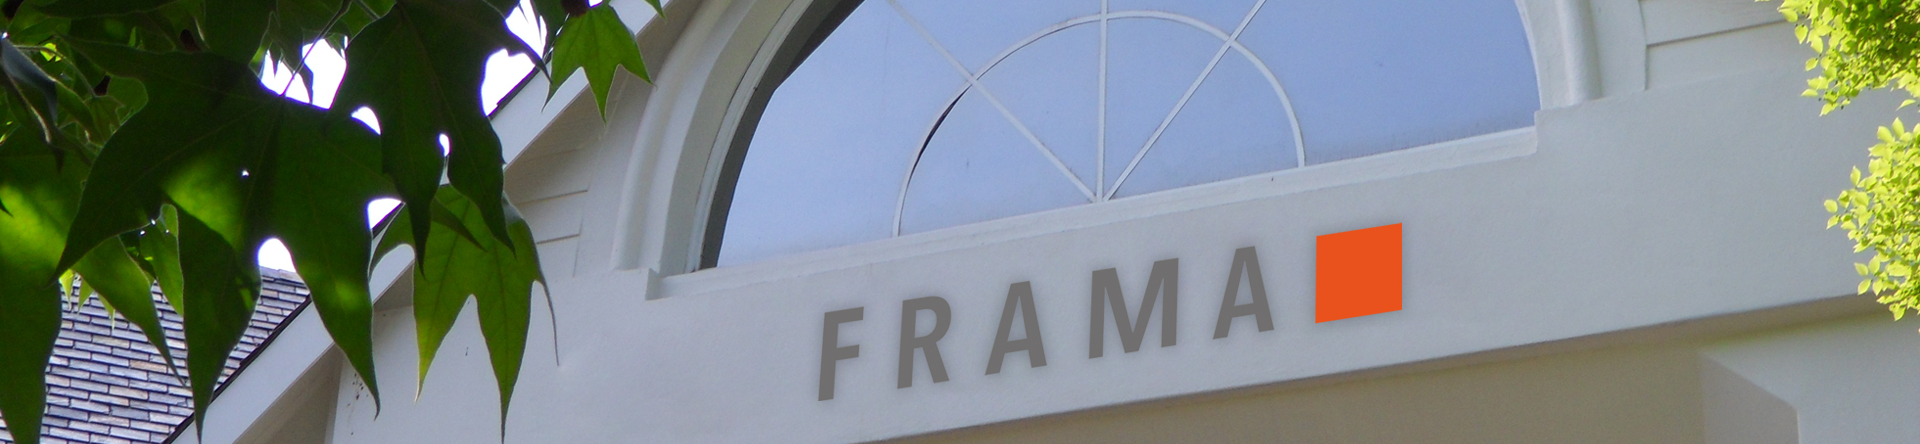 Building of Frama PTY Ltd. in Sandton in South Africa.